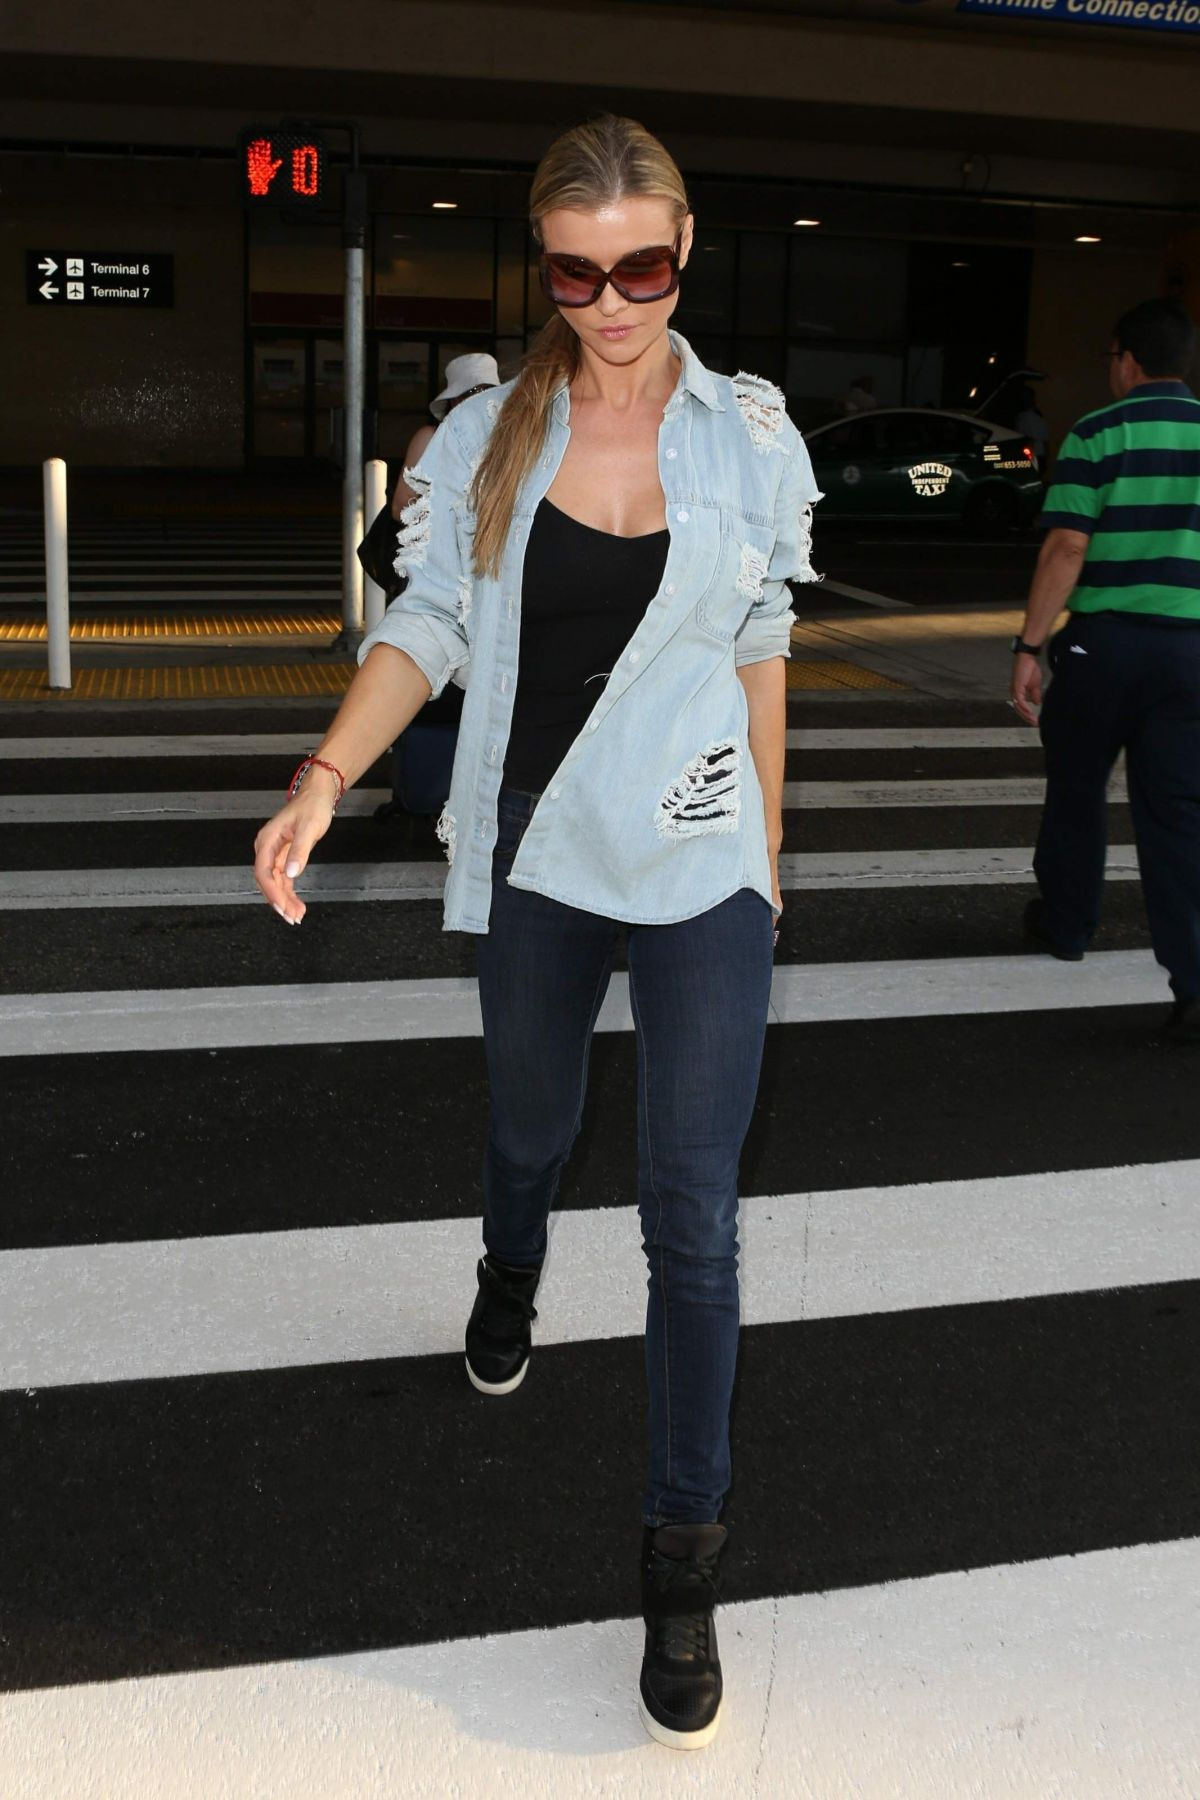 Joanna Krupa At LAX International Airport, Los Angeles   joanna-krupa-at-lax-international-airport-los-angeles_12